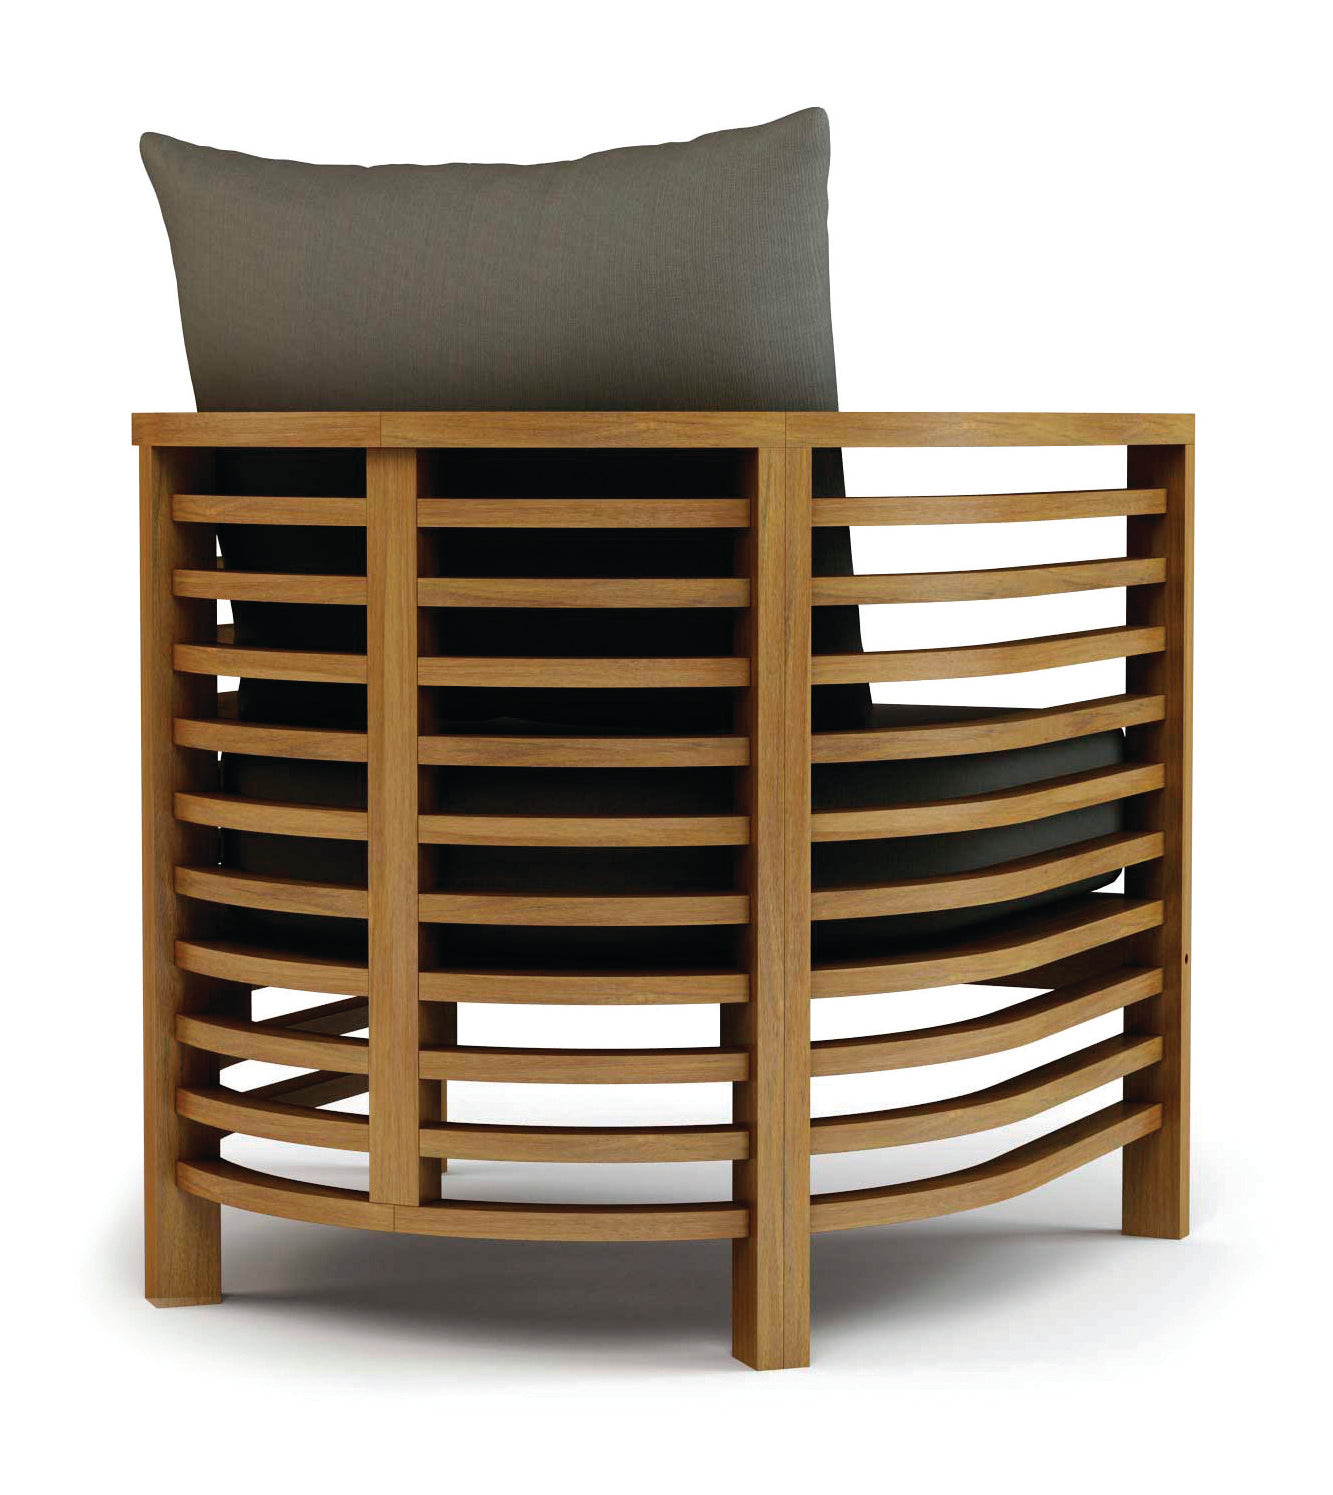 Spirals teak lounge chair by bd outdoor burke decor